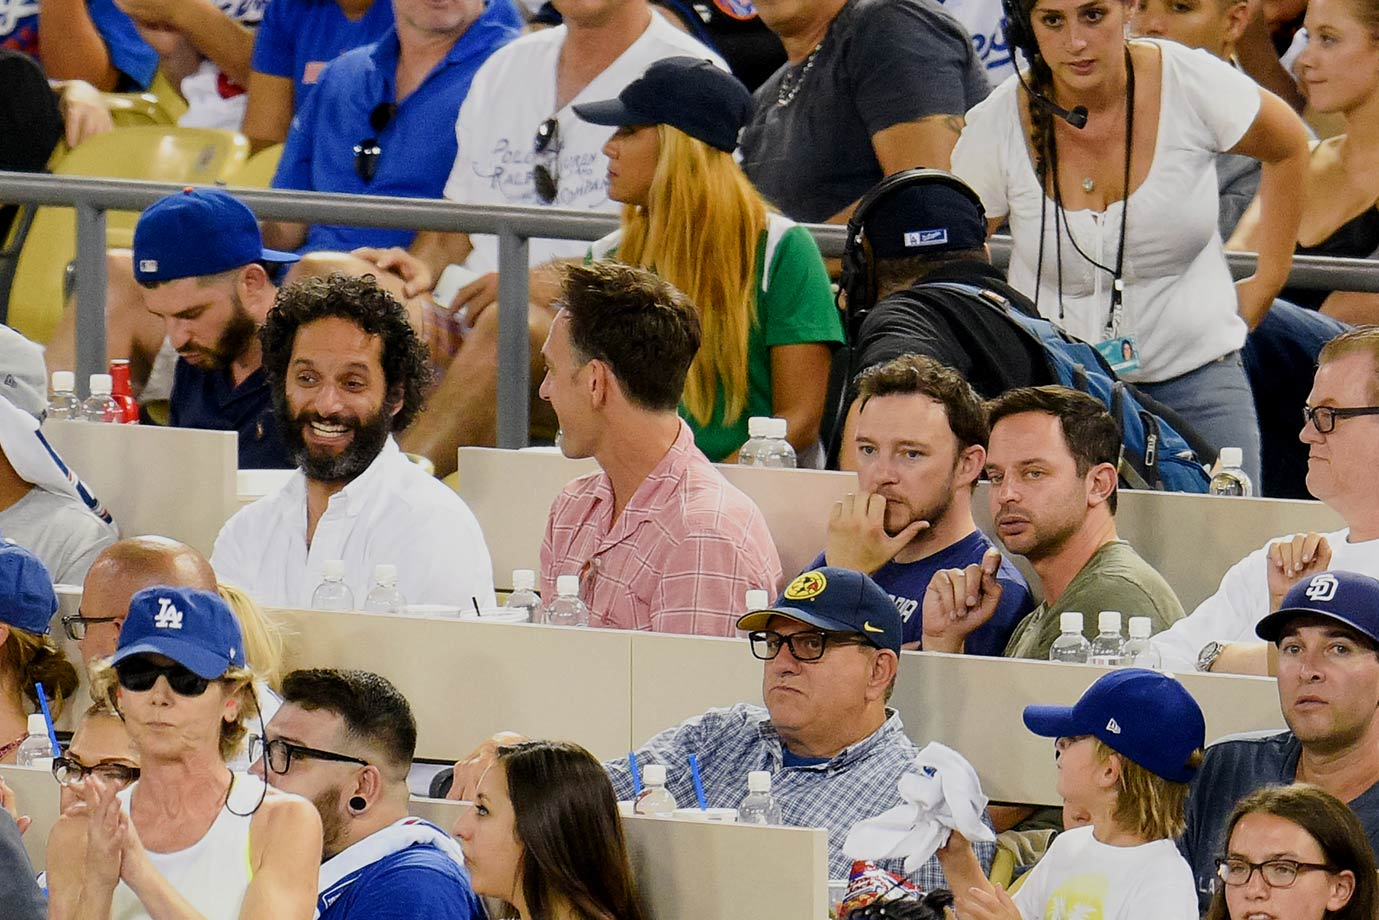 October 10, 2015: Los Angeles Dodgers vs. New York Mets at Dodger Stadium in Los Angeles —National League Division Series, Game 2